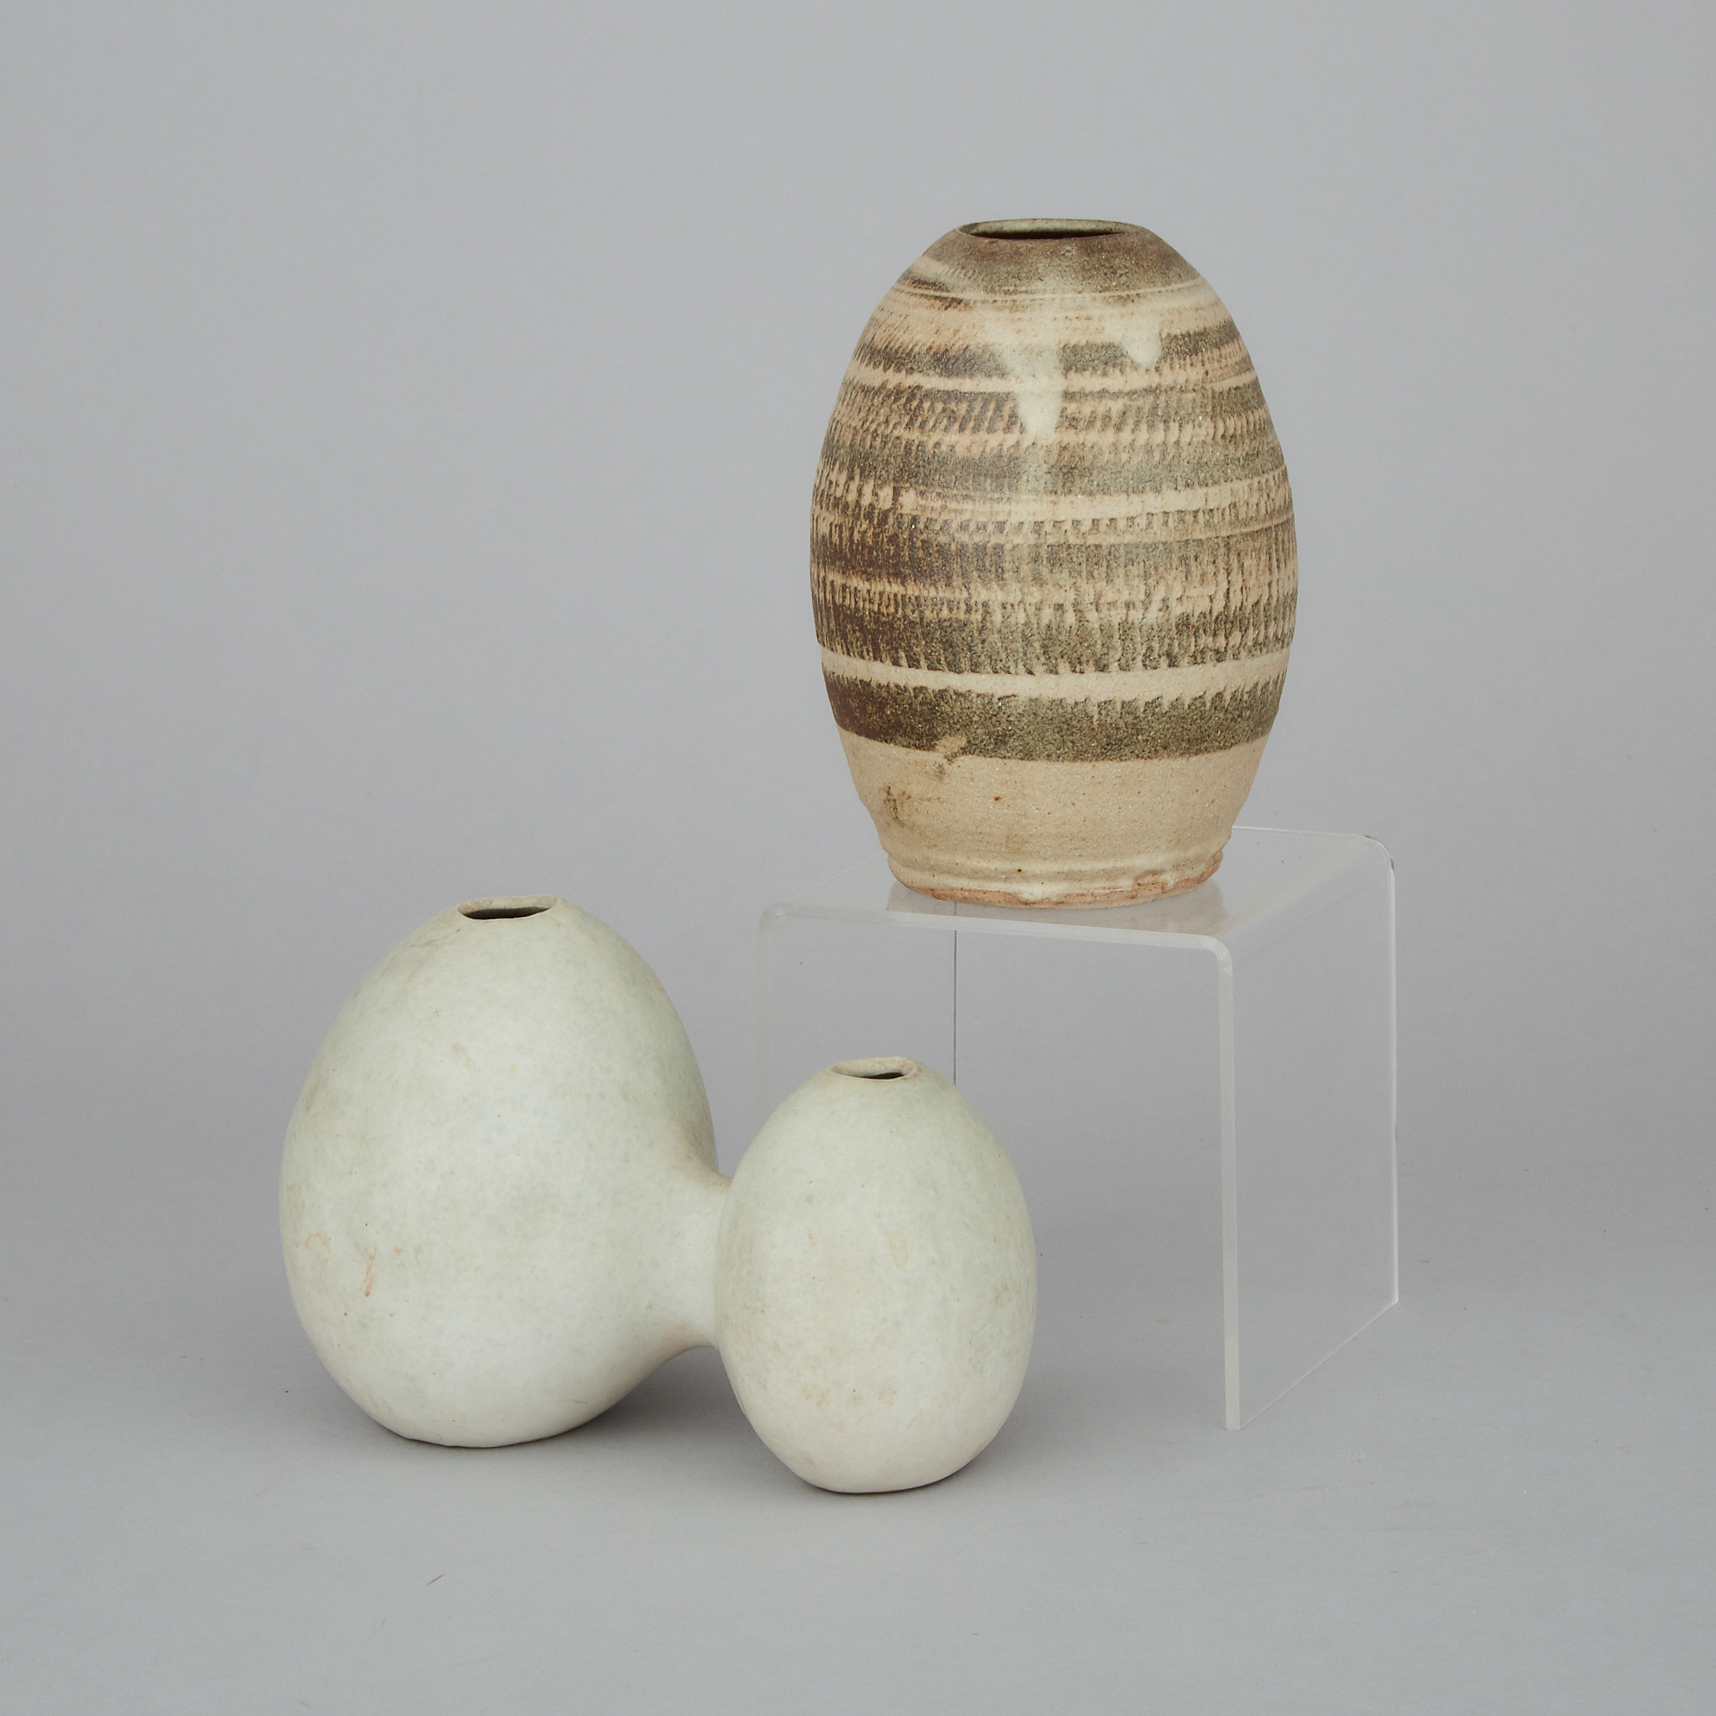 Two Small Ovoid Form Vases, Circa 1960